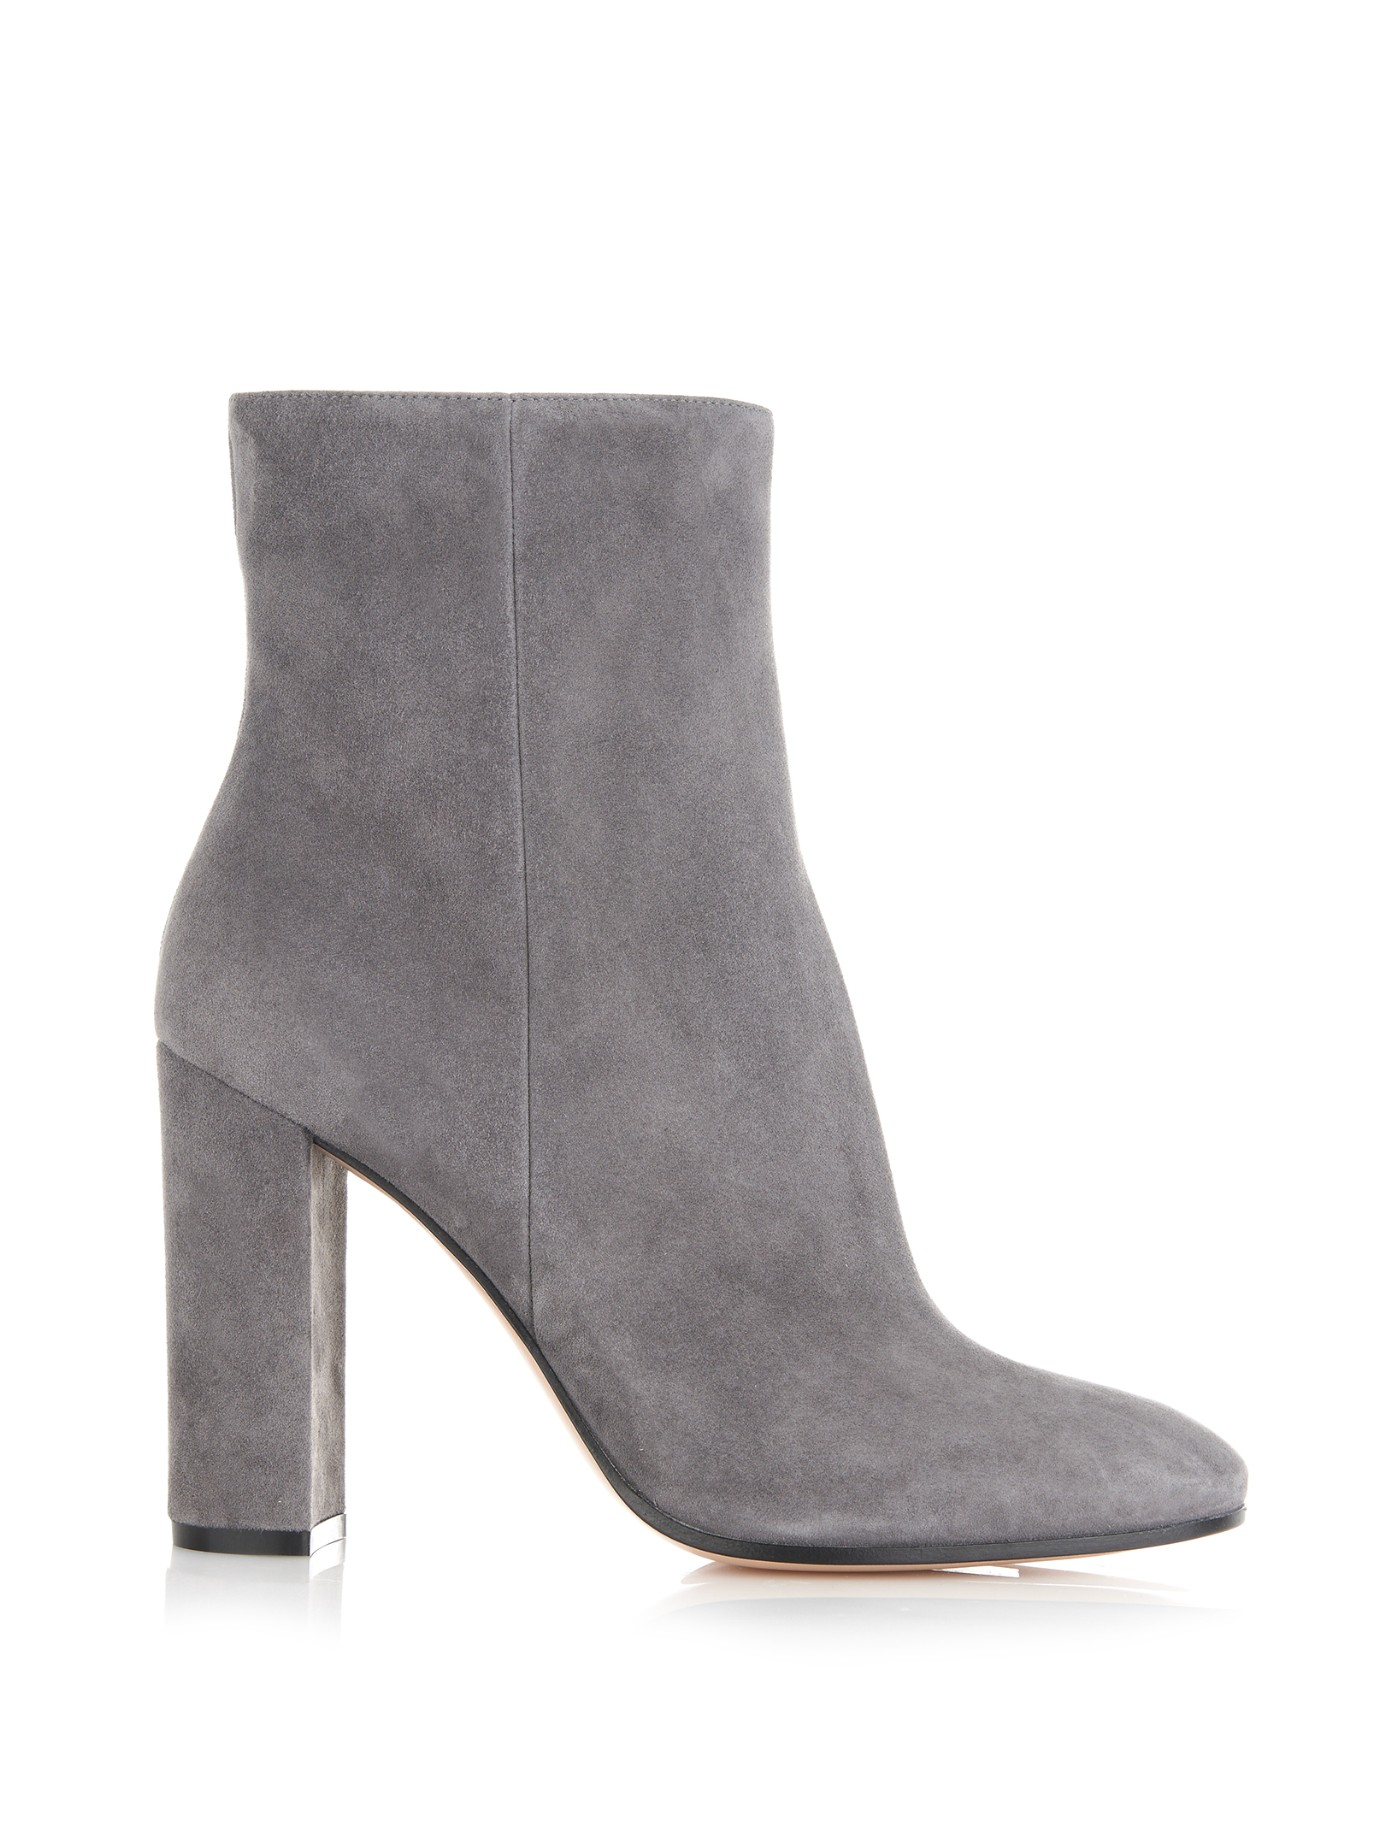 gianvito rossi rolling suede ankle boots in gray lyst. Black Bedroom Furniture Sets. Home Design Ideas